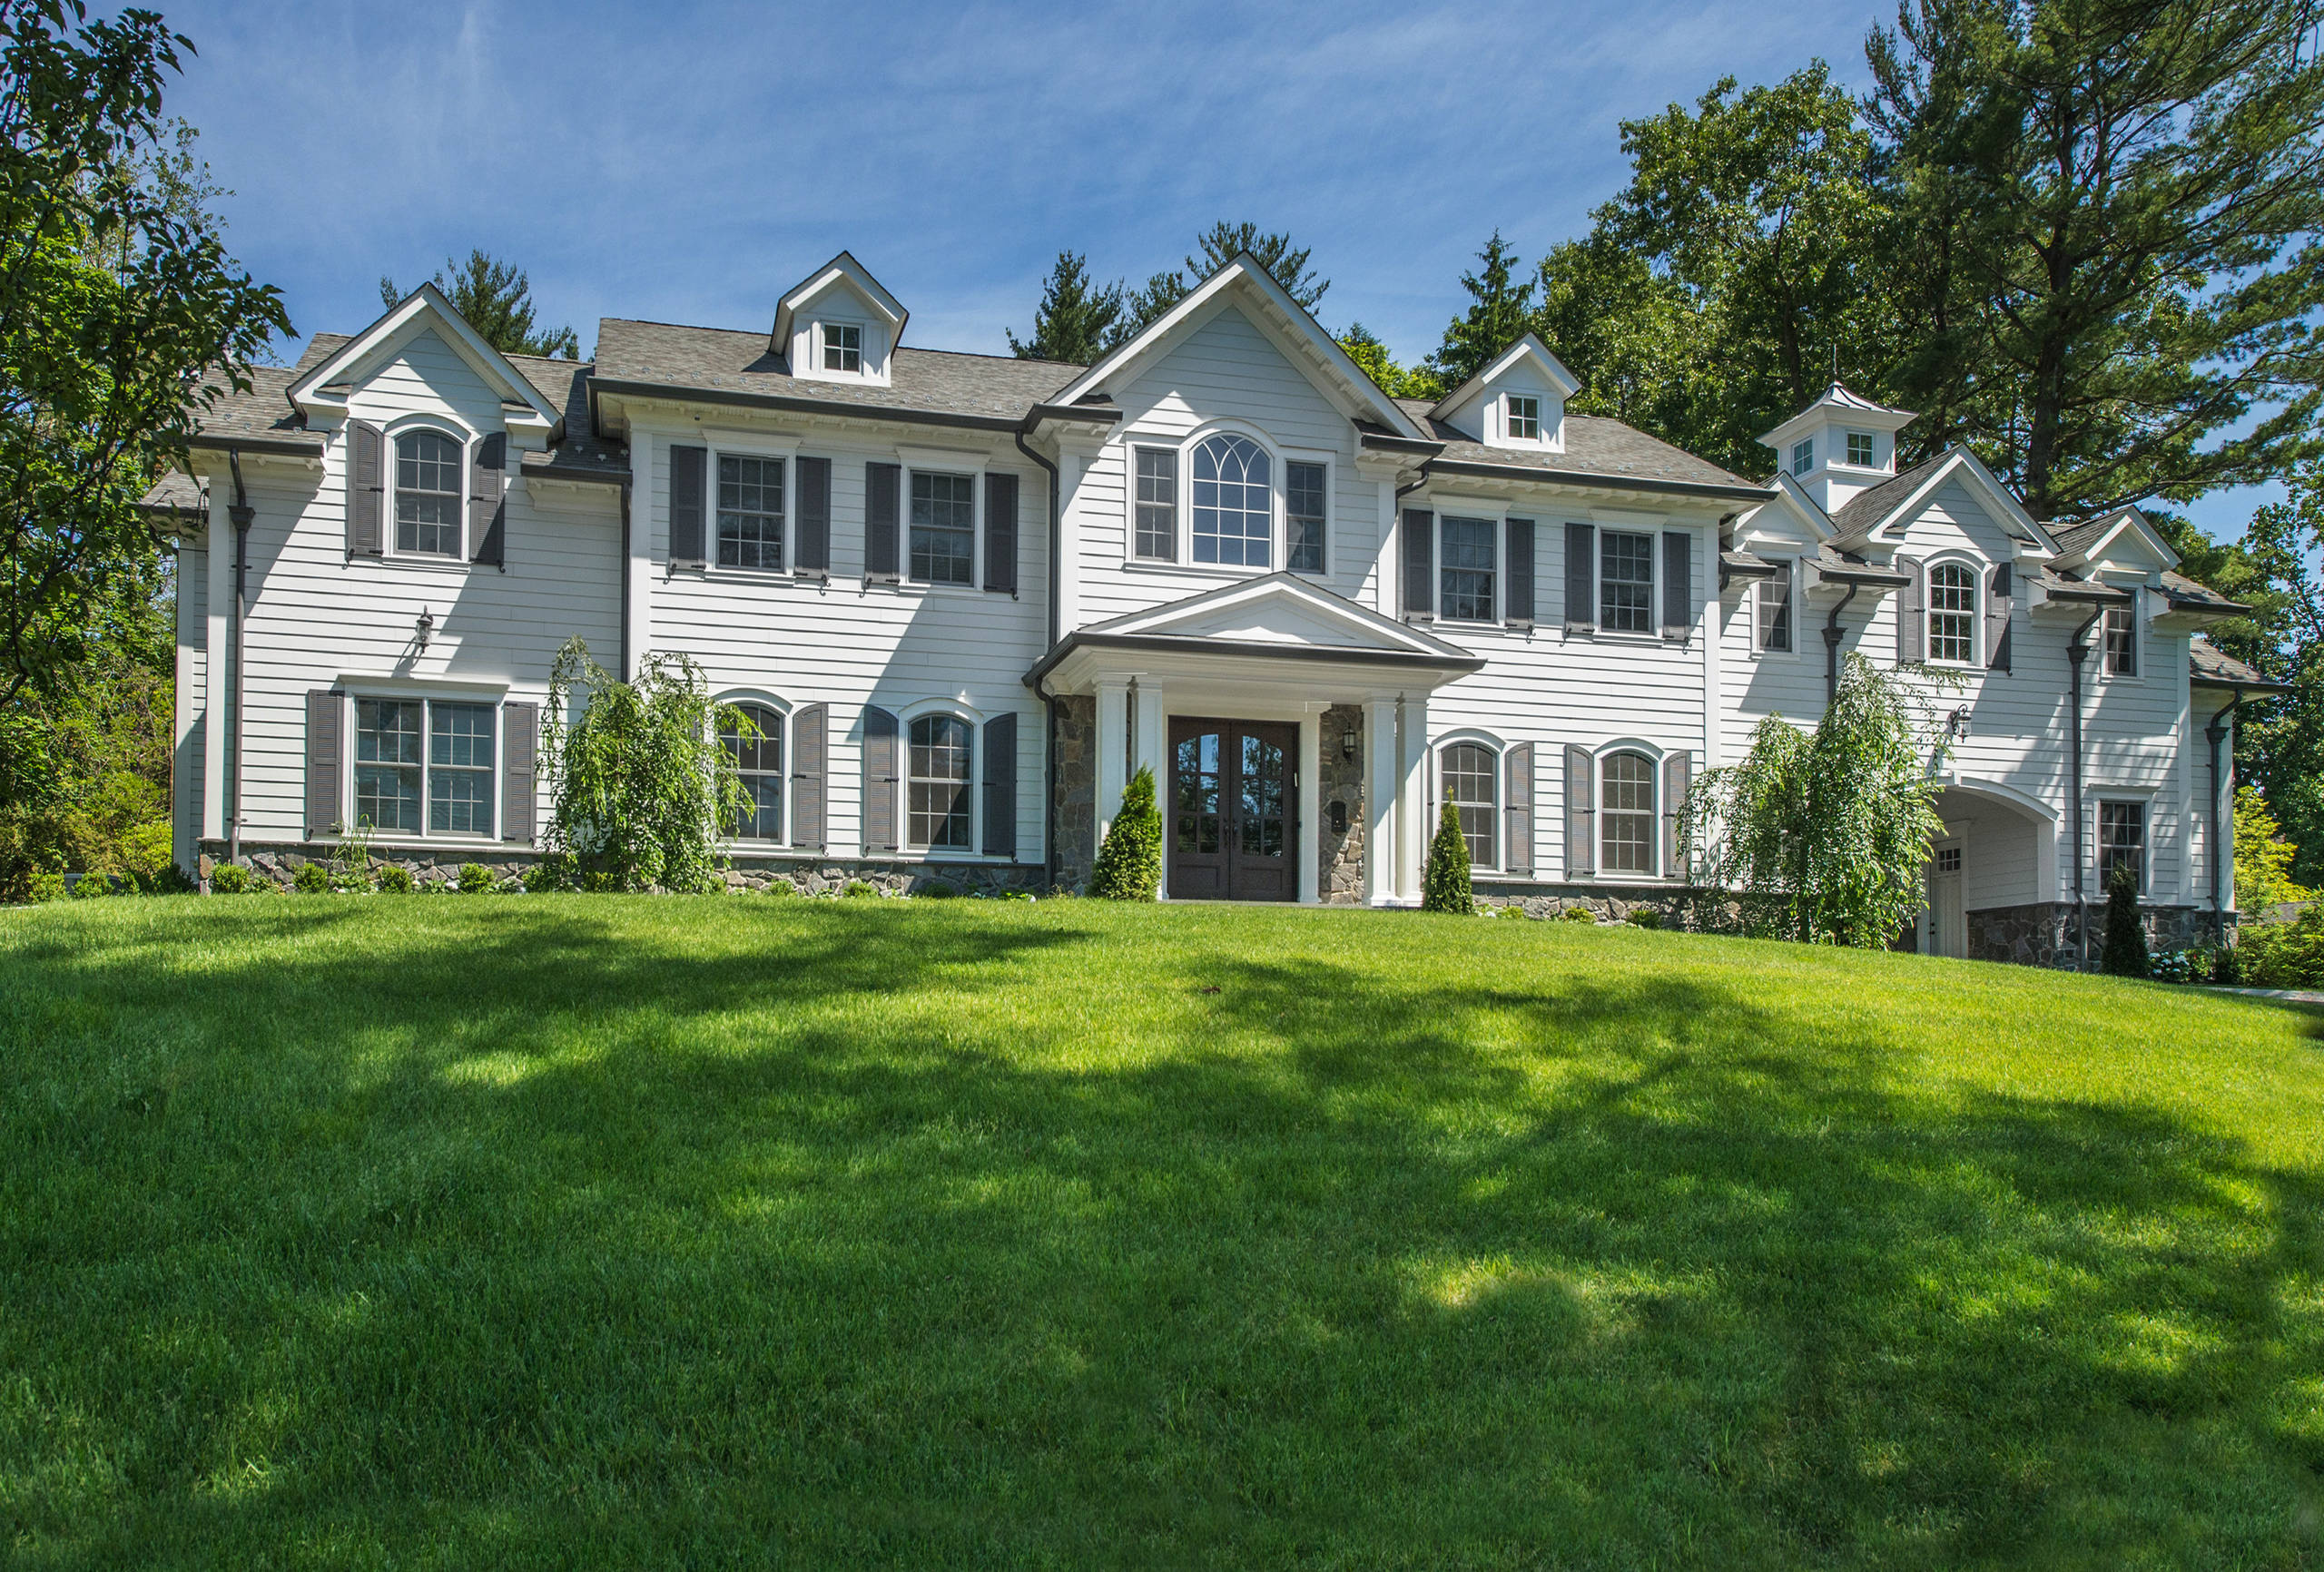 Center Hall Mansion in Tenafly NJ